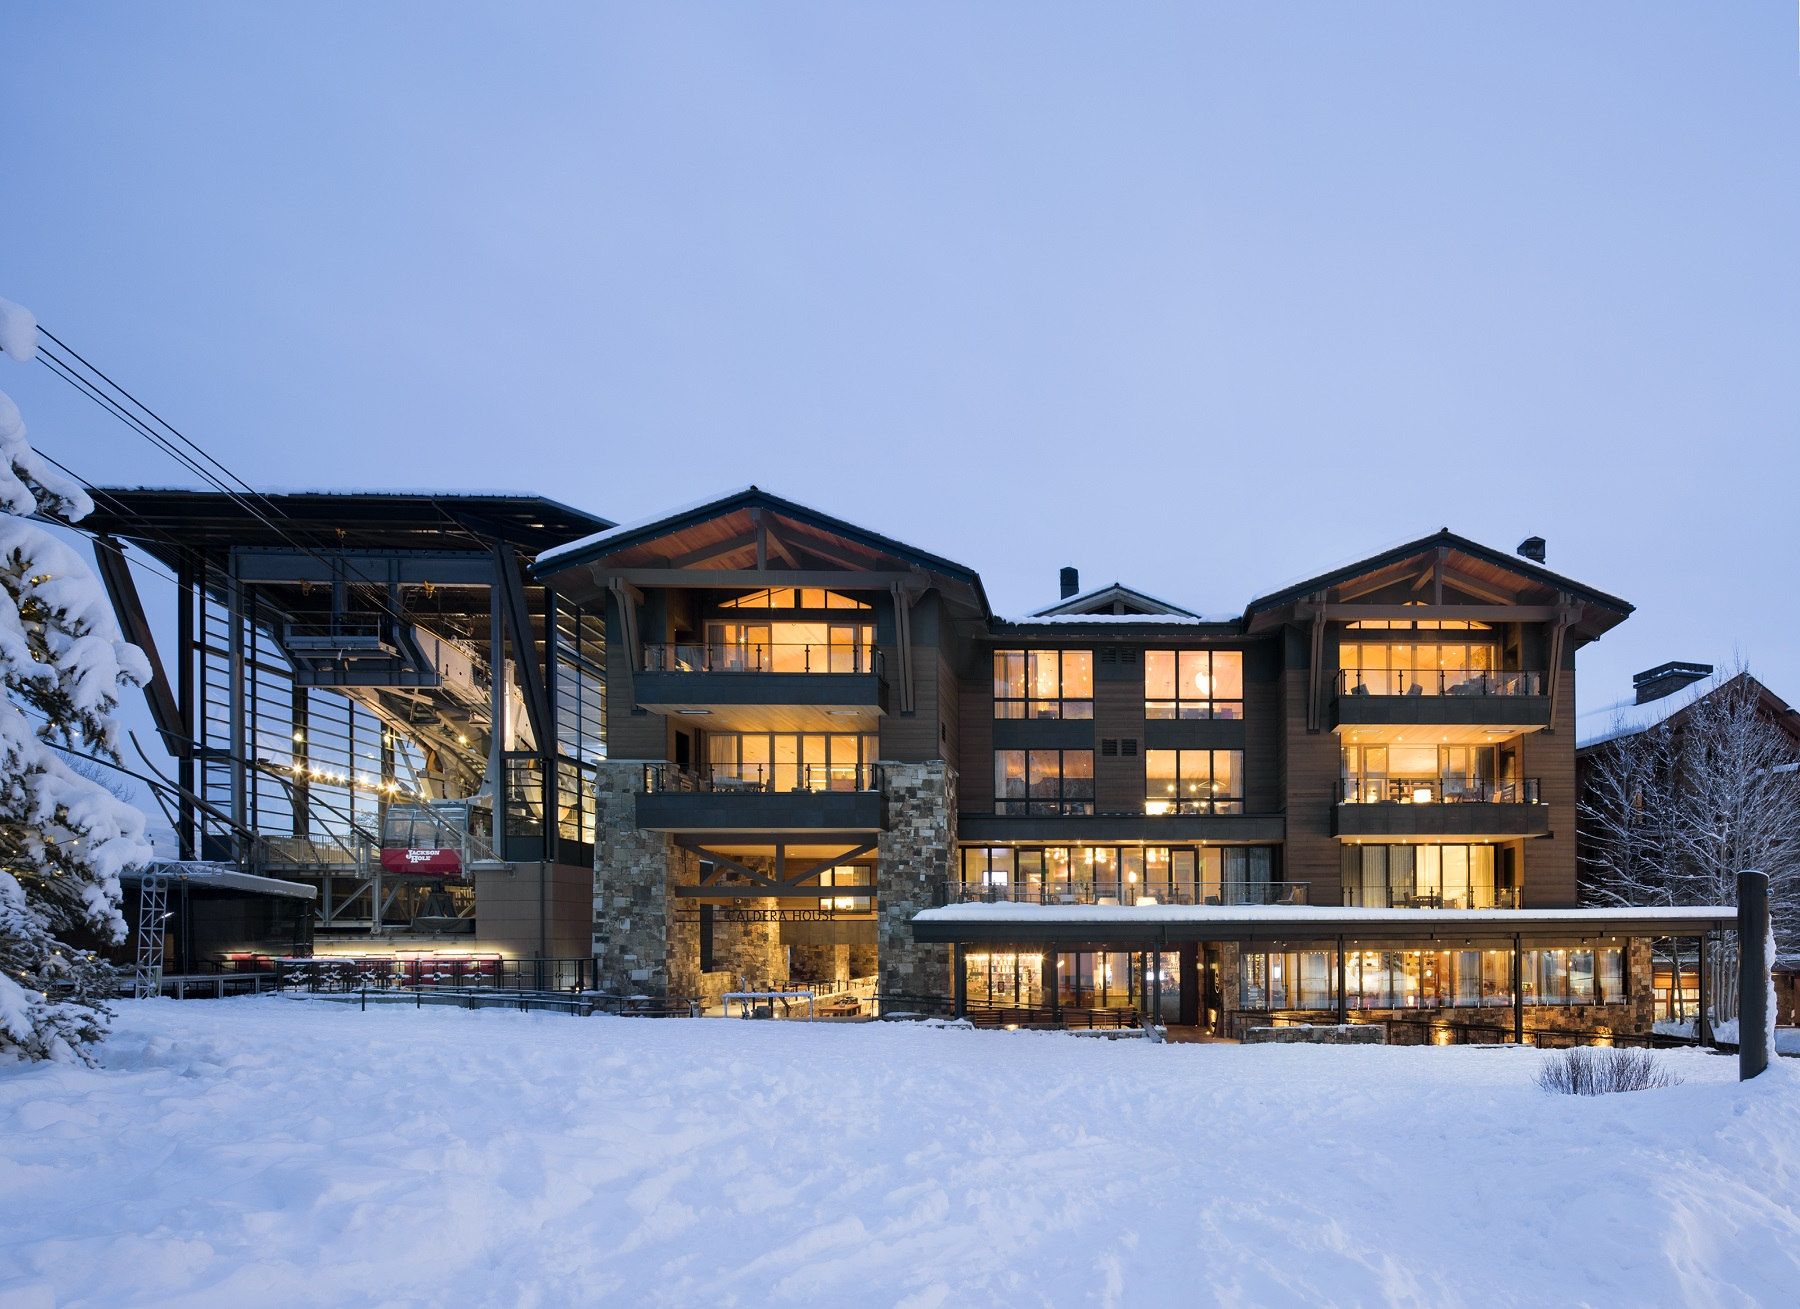 outdoor view of caldera house with snow on the ground